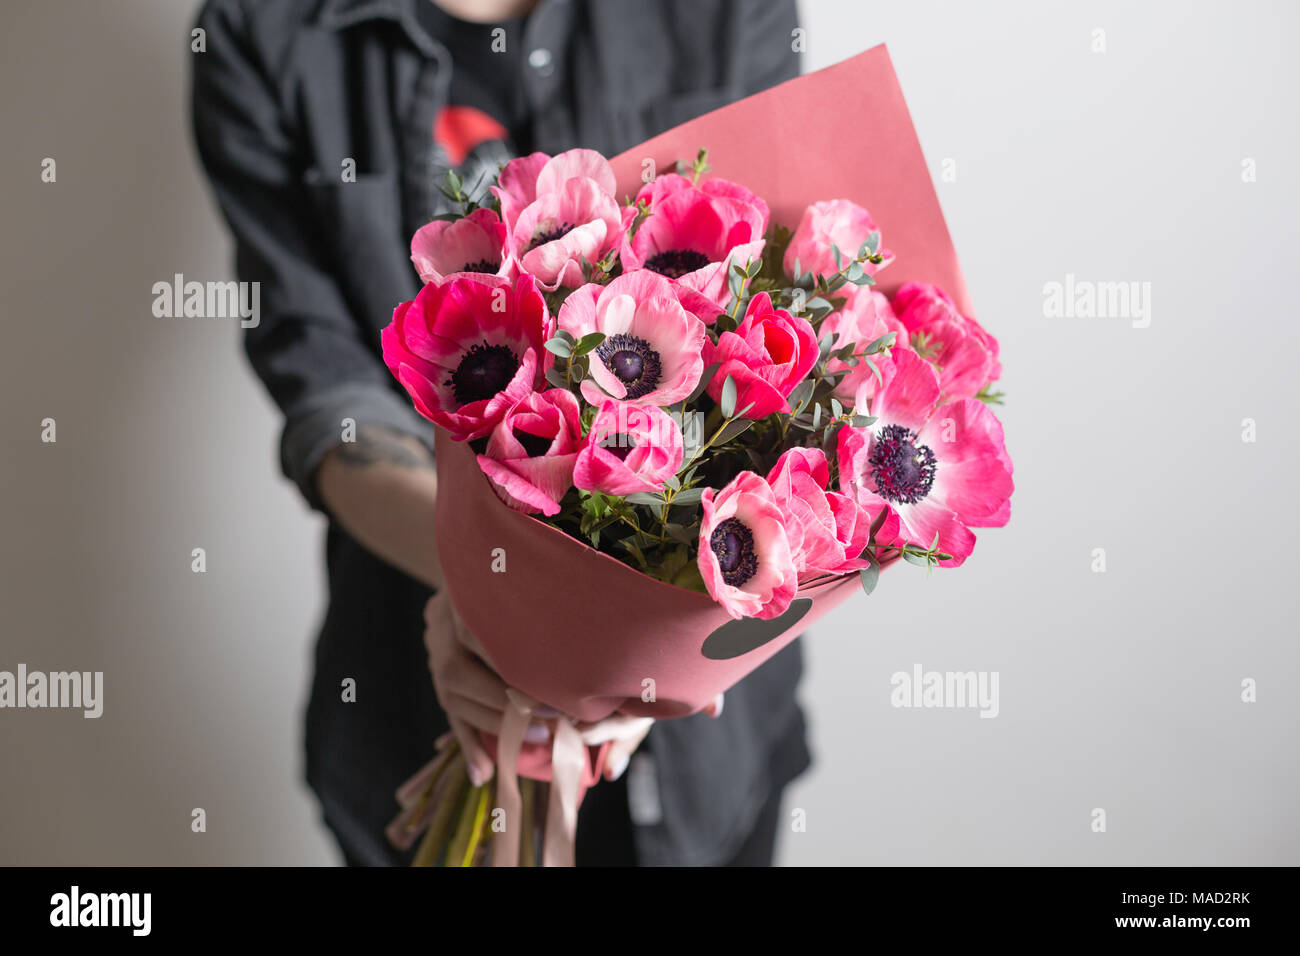 Cute flowers beautiful bouquet of pink anemones in woman hand the cute flowers beautiful bouquet of pink anemones in woman hand the work of the florist at a flower shop a small family business izmirmasajfo